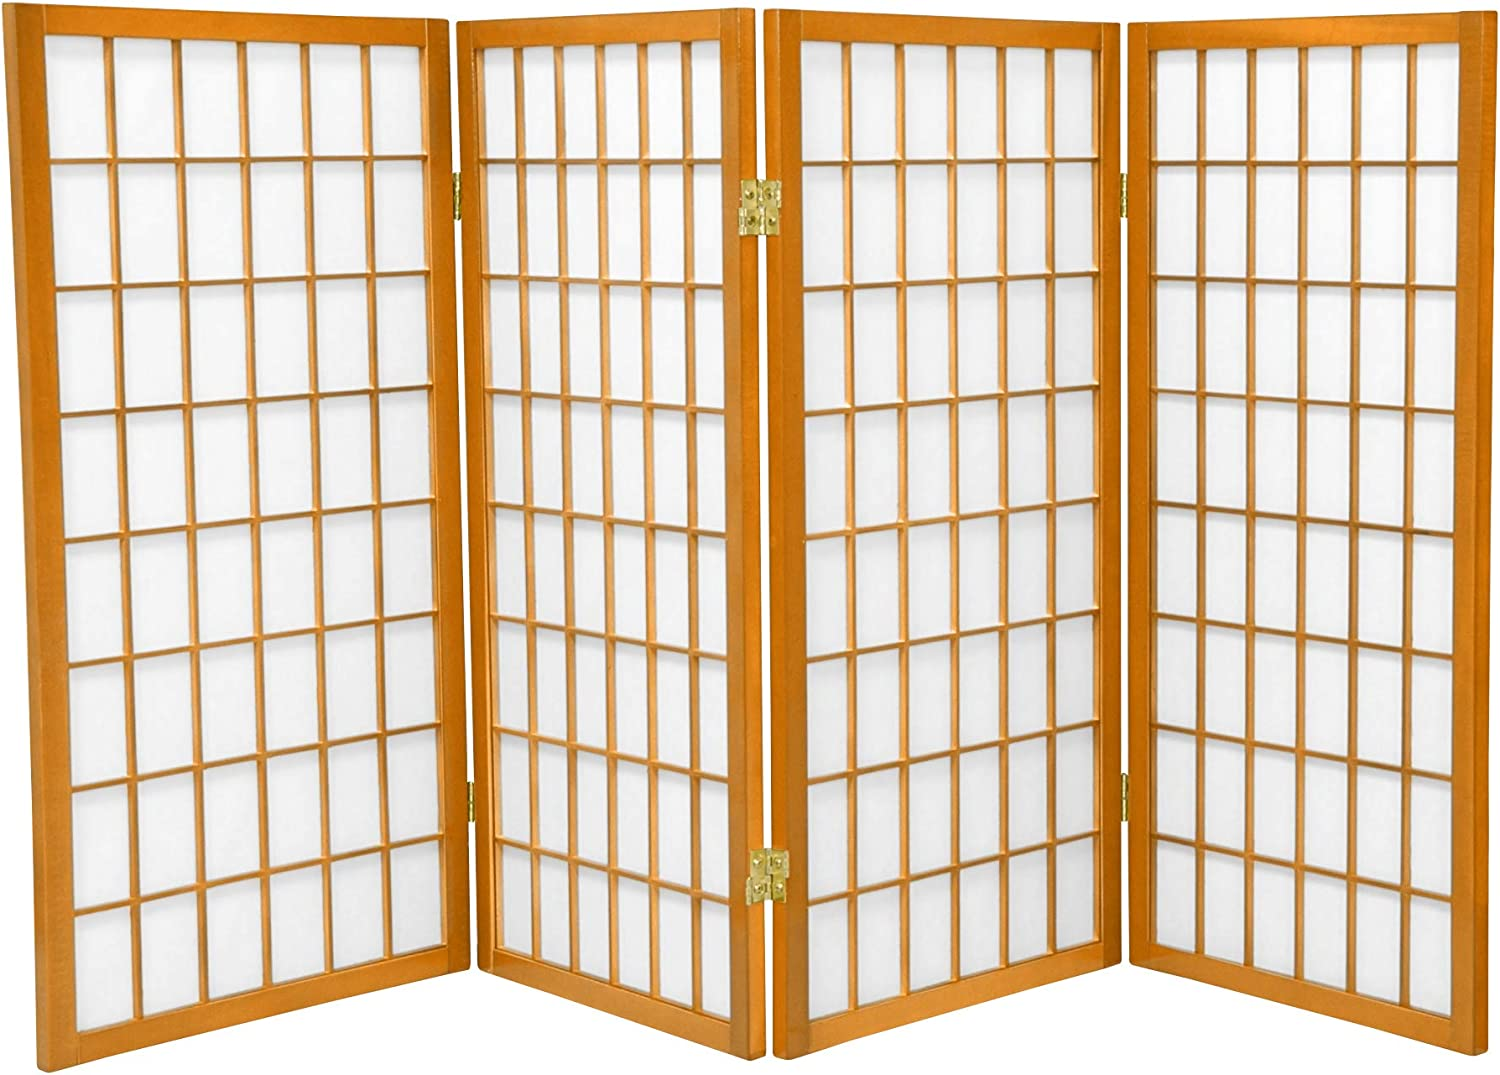 Oriental Furniture 3 ft. Tall Window Pane Shoji Screen - Honey - 4 Panels